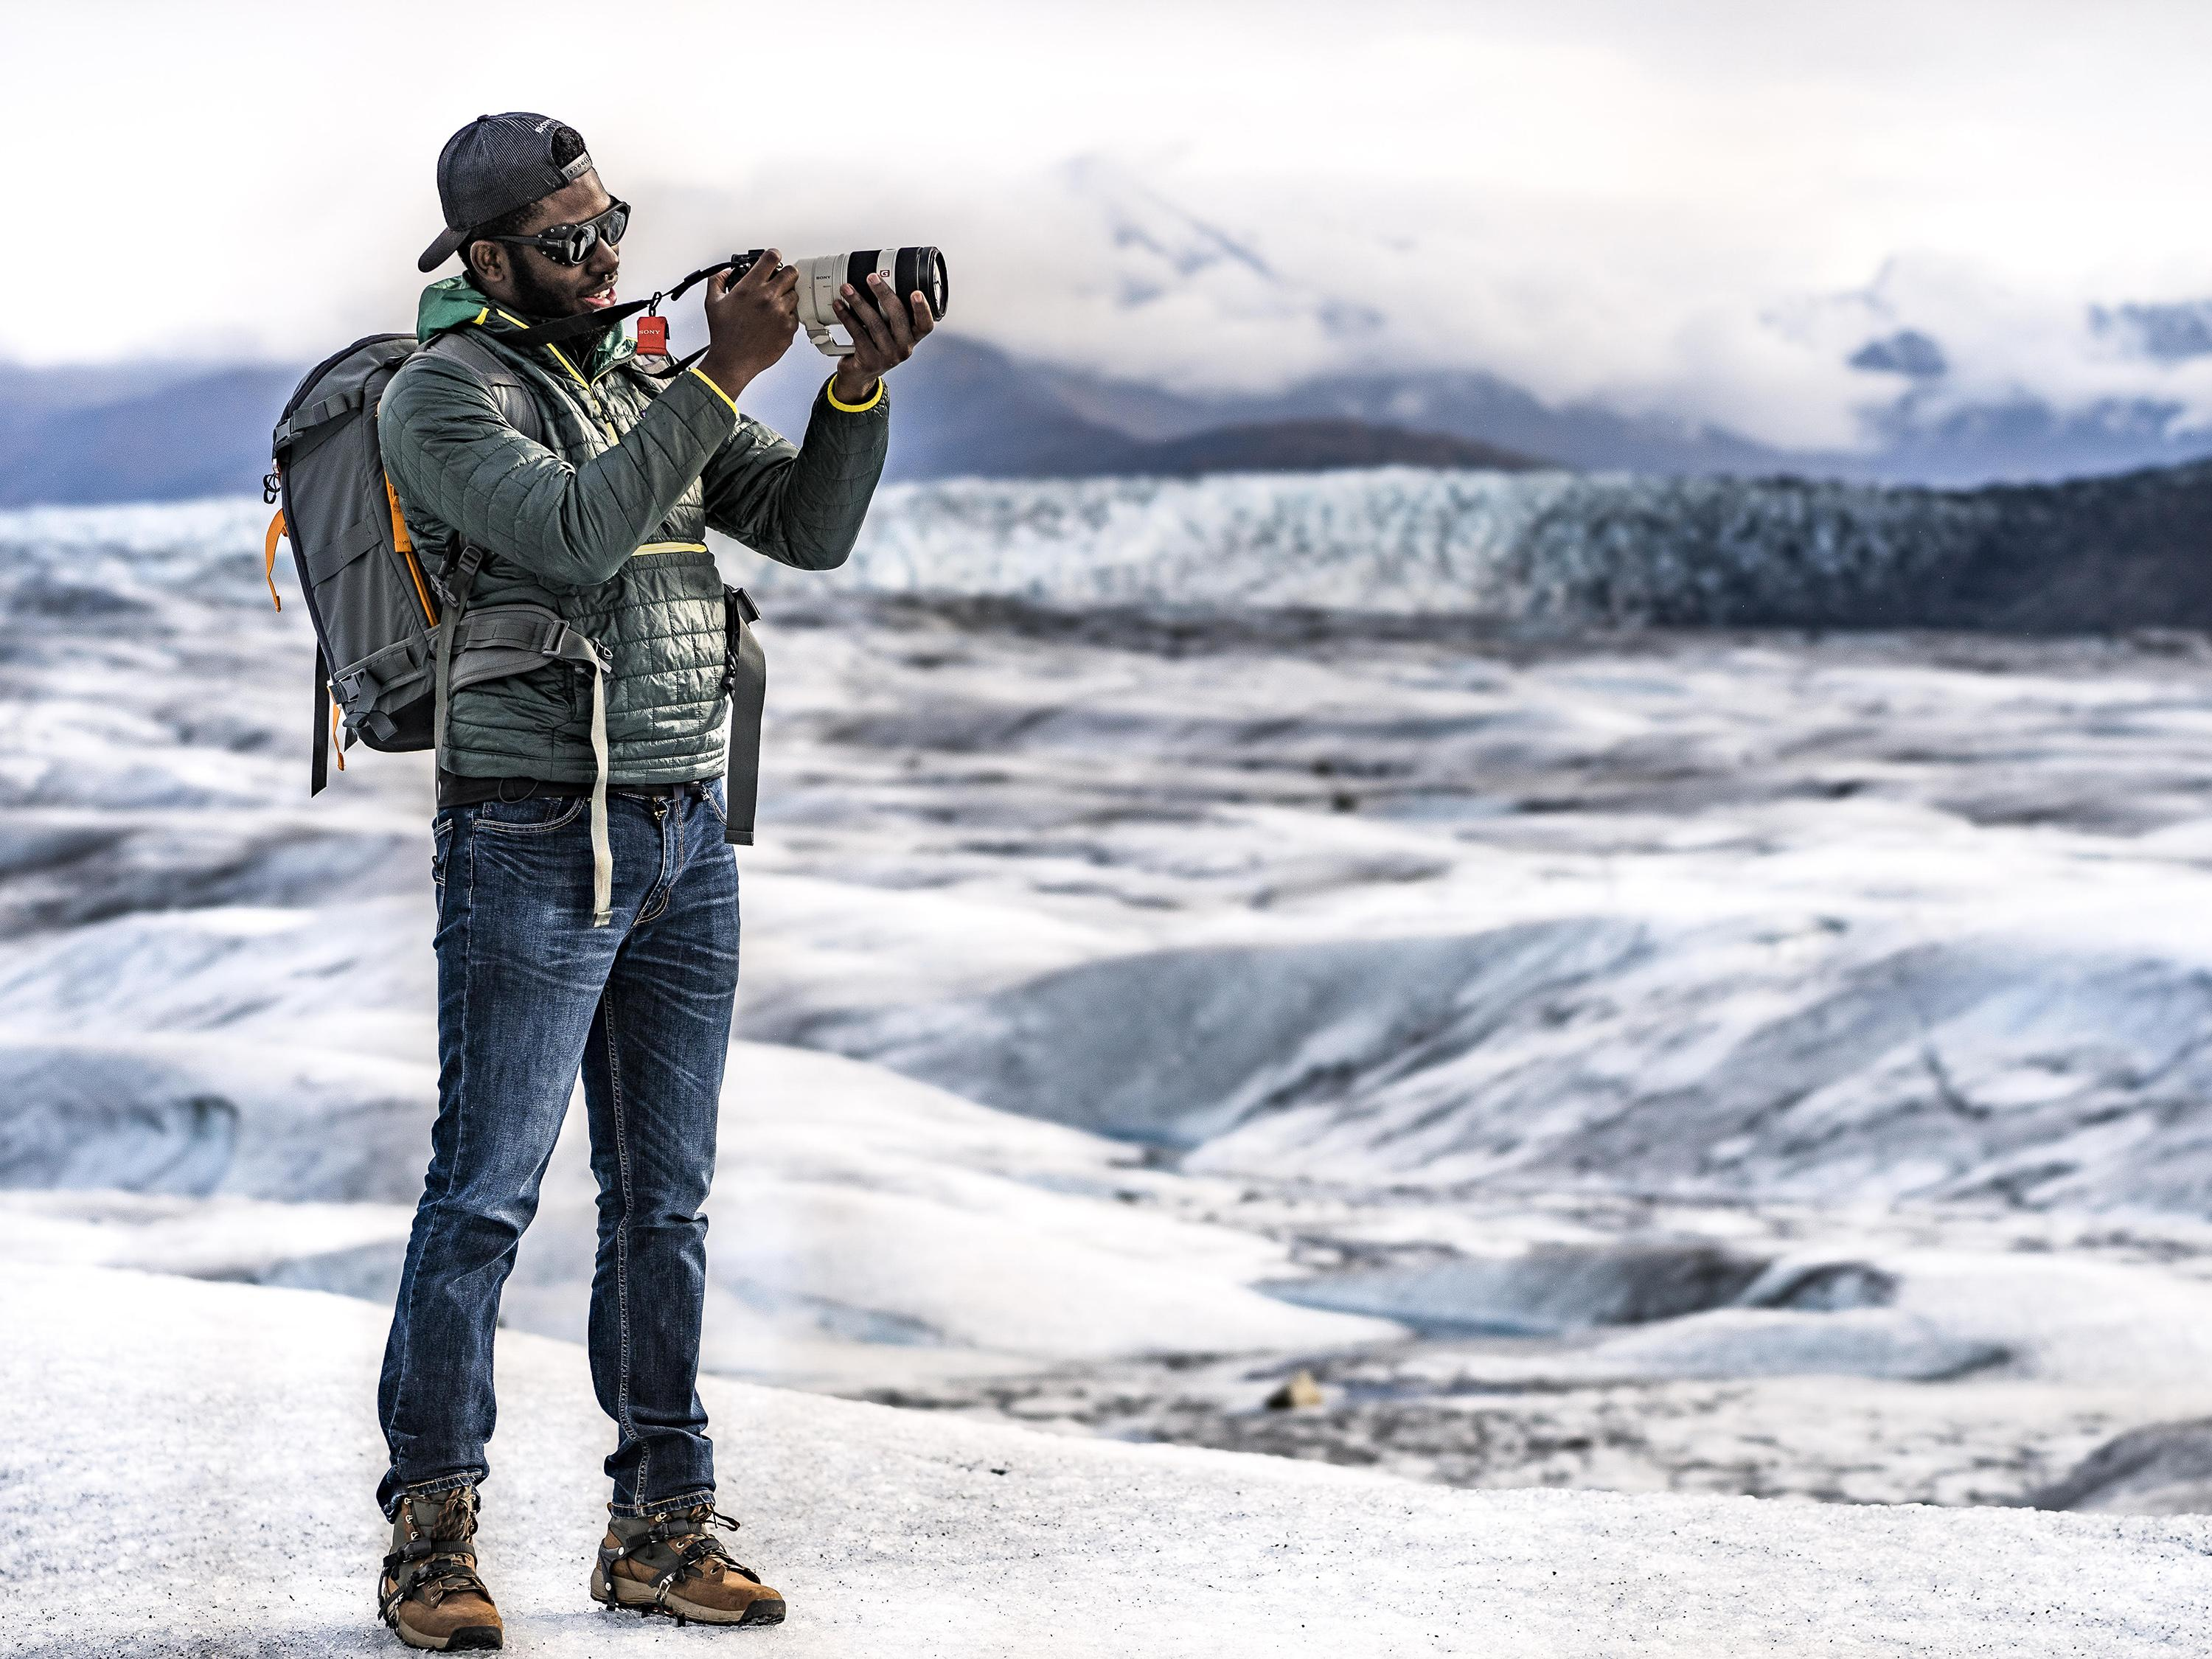 Mic-Anthony Hay takes photographs on a glacier in Alaska